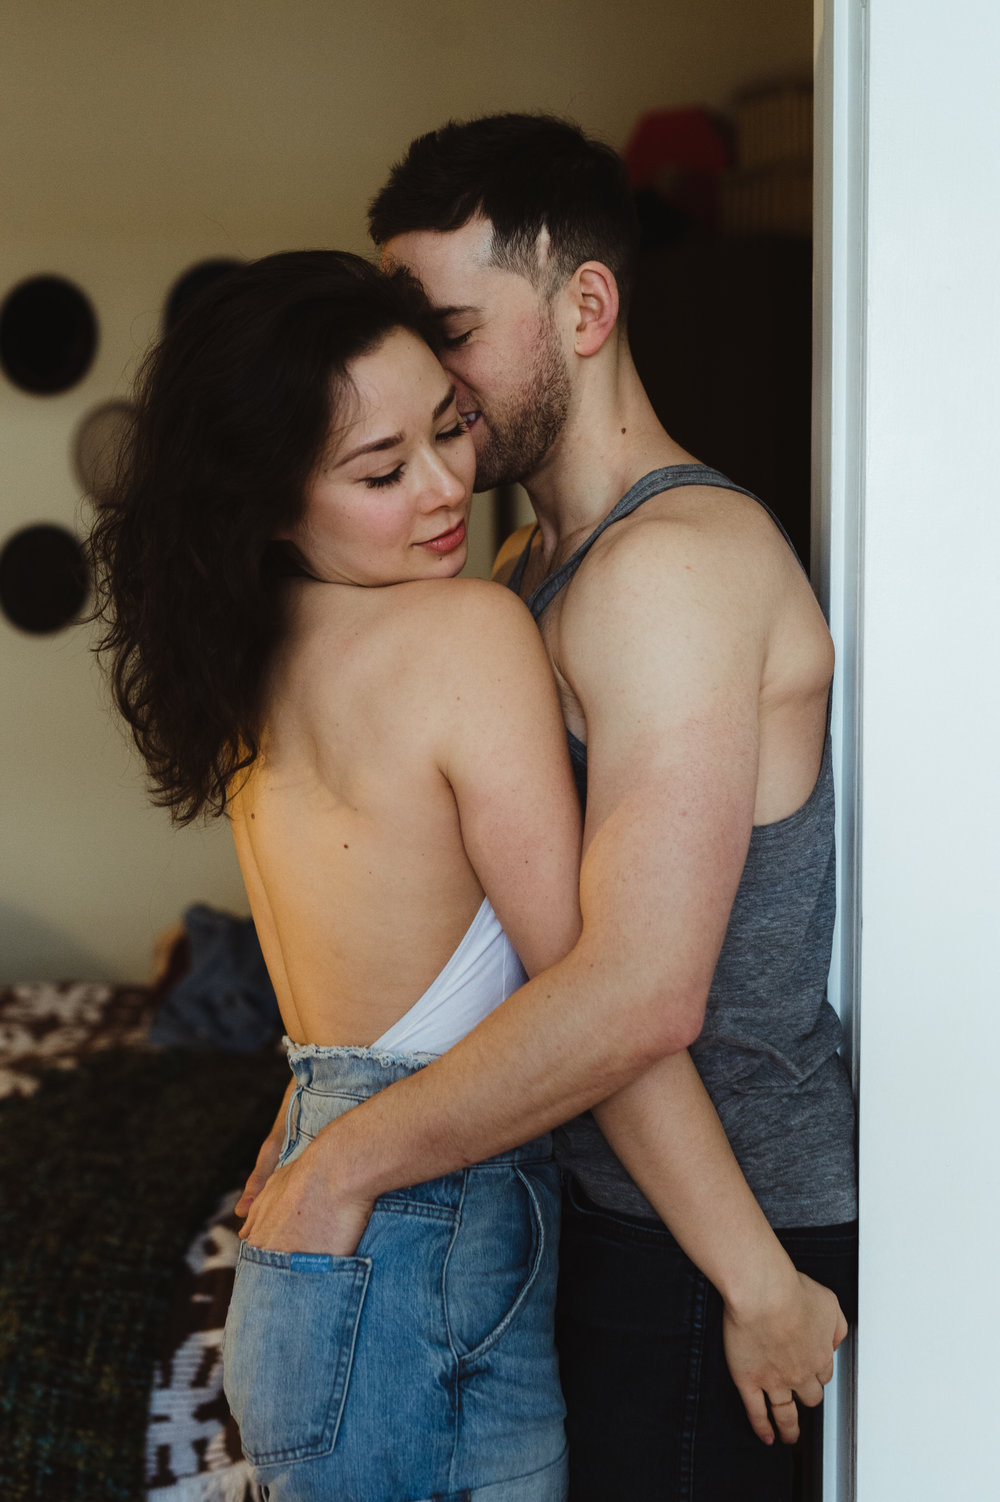 scarletoneillphotography_at home couples session15.JPG